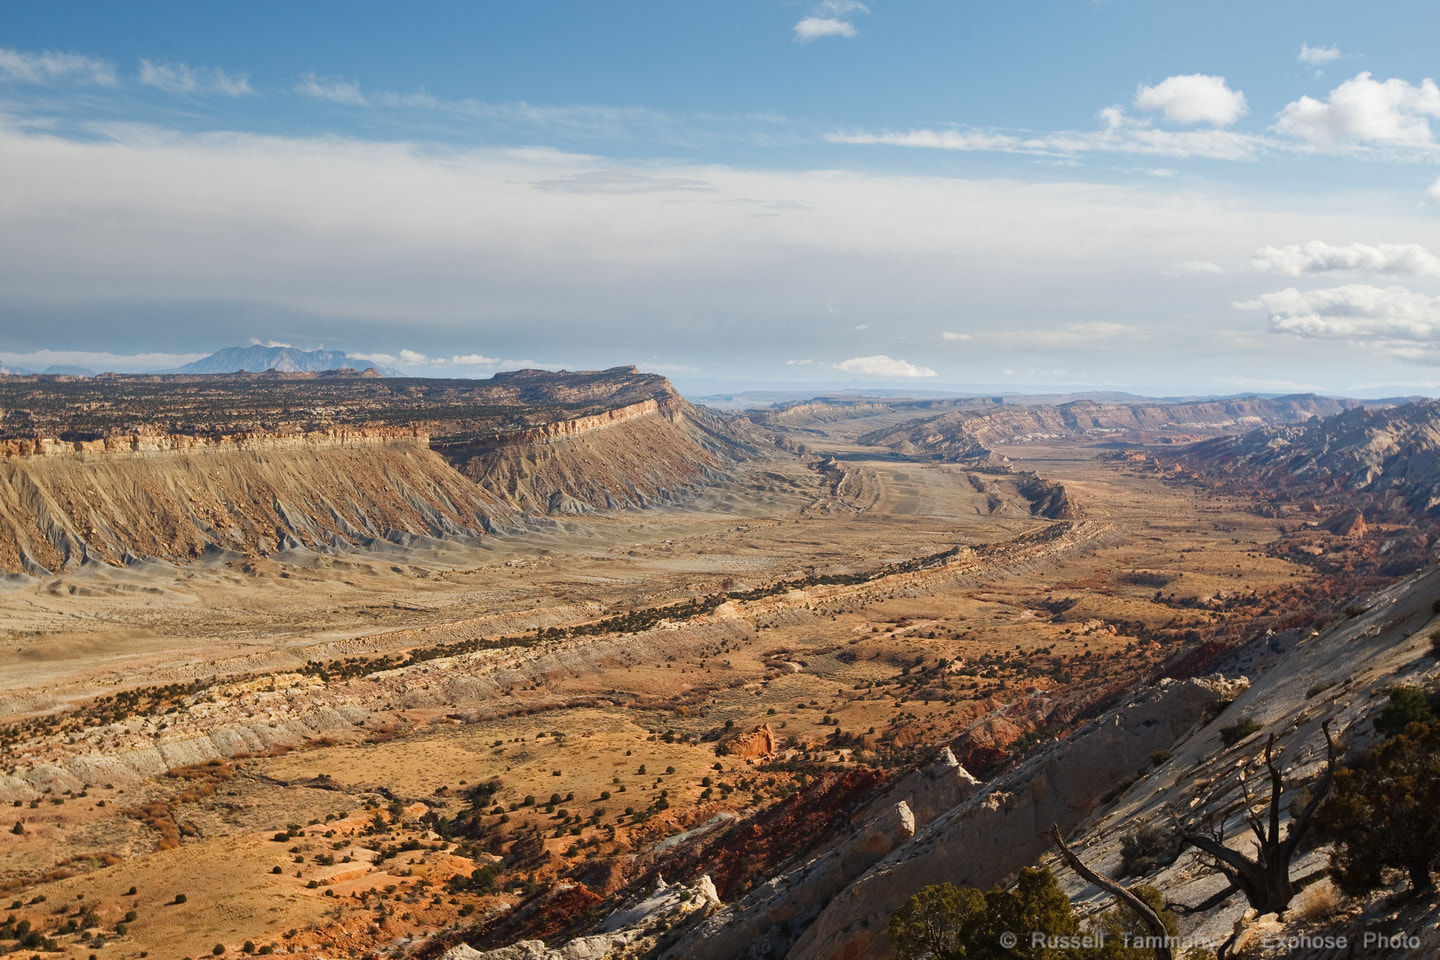 Photograph Strike Valley, Capitol Reef by Russell Tammany on 500px